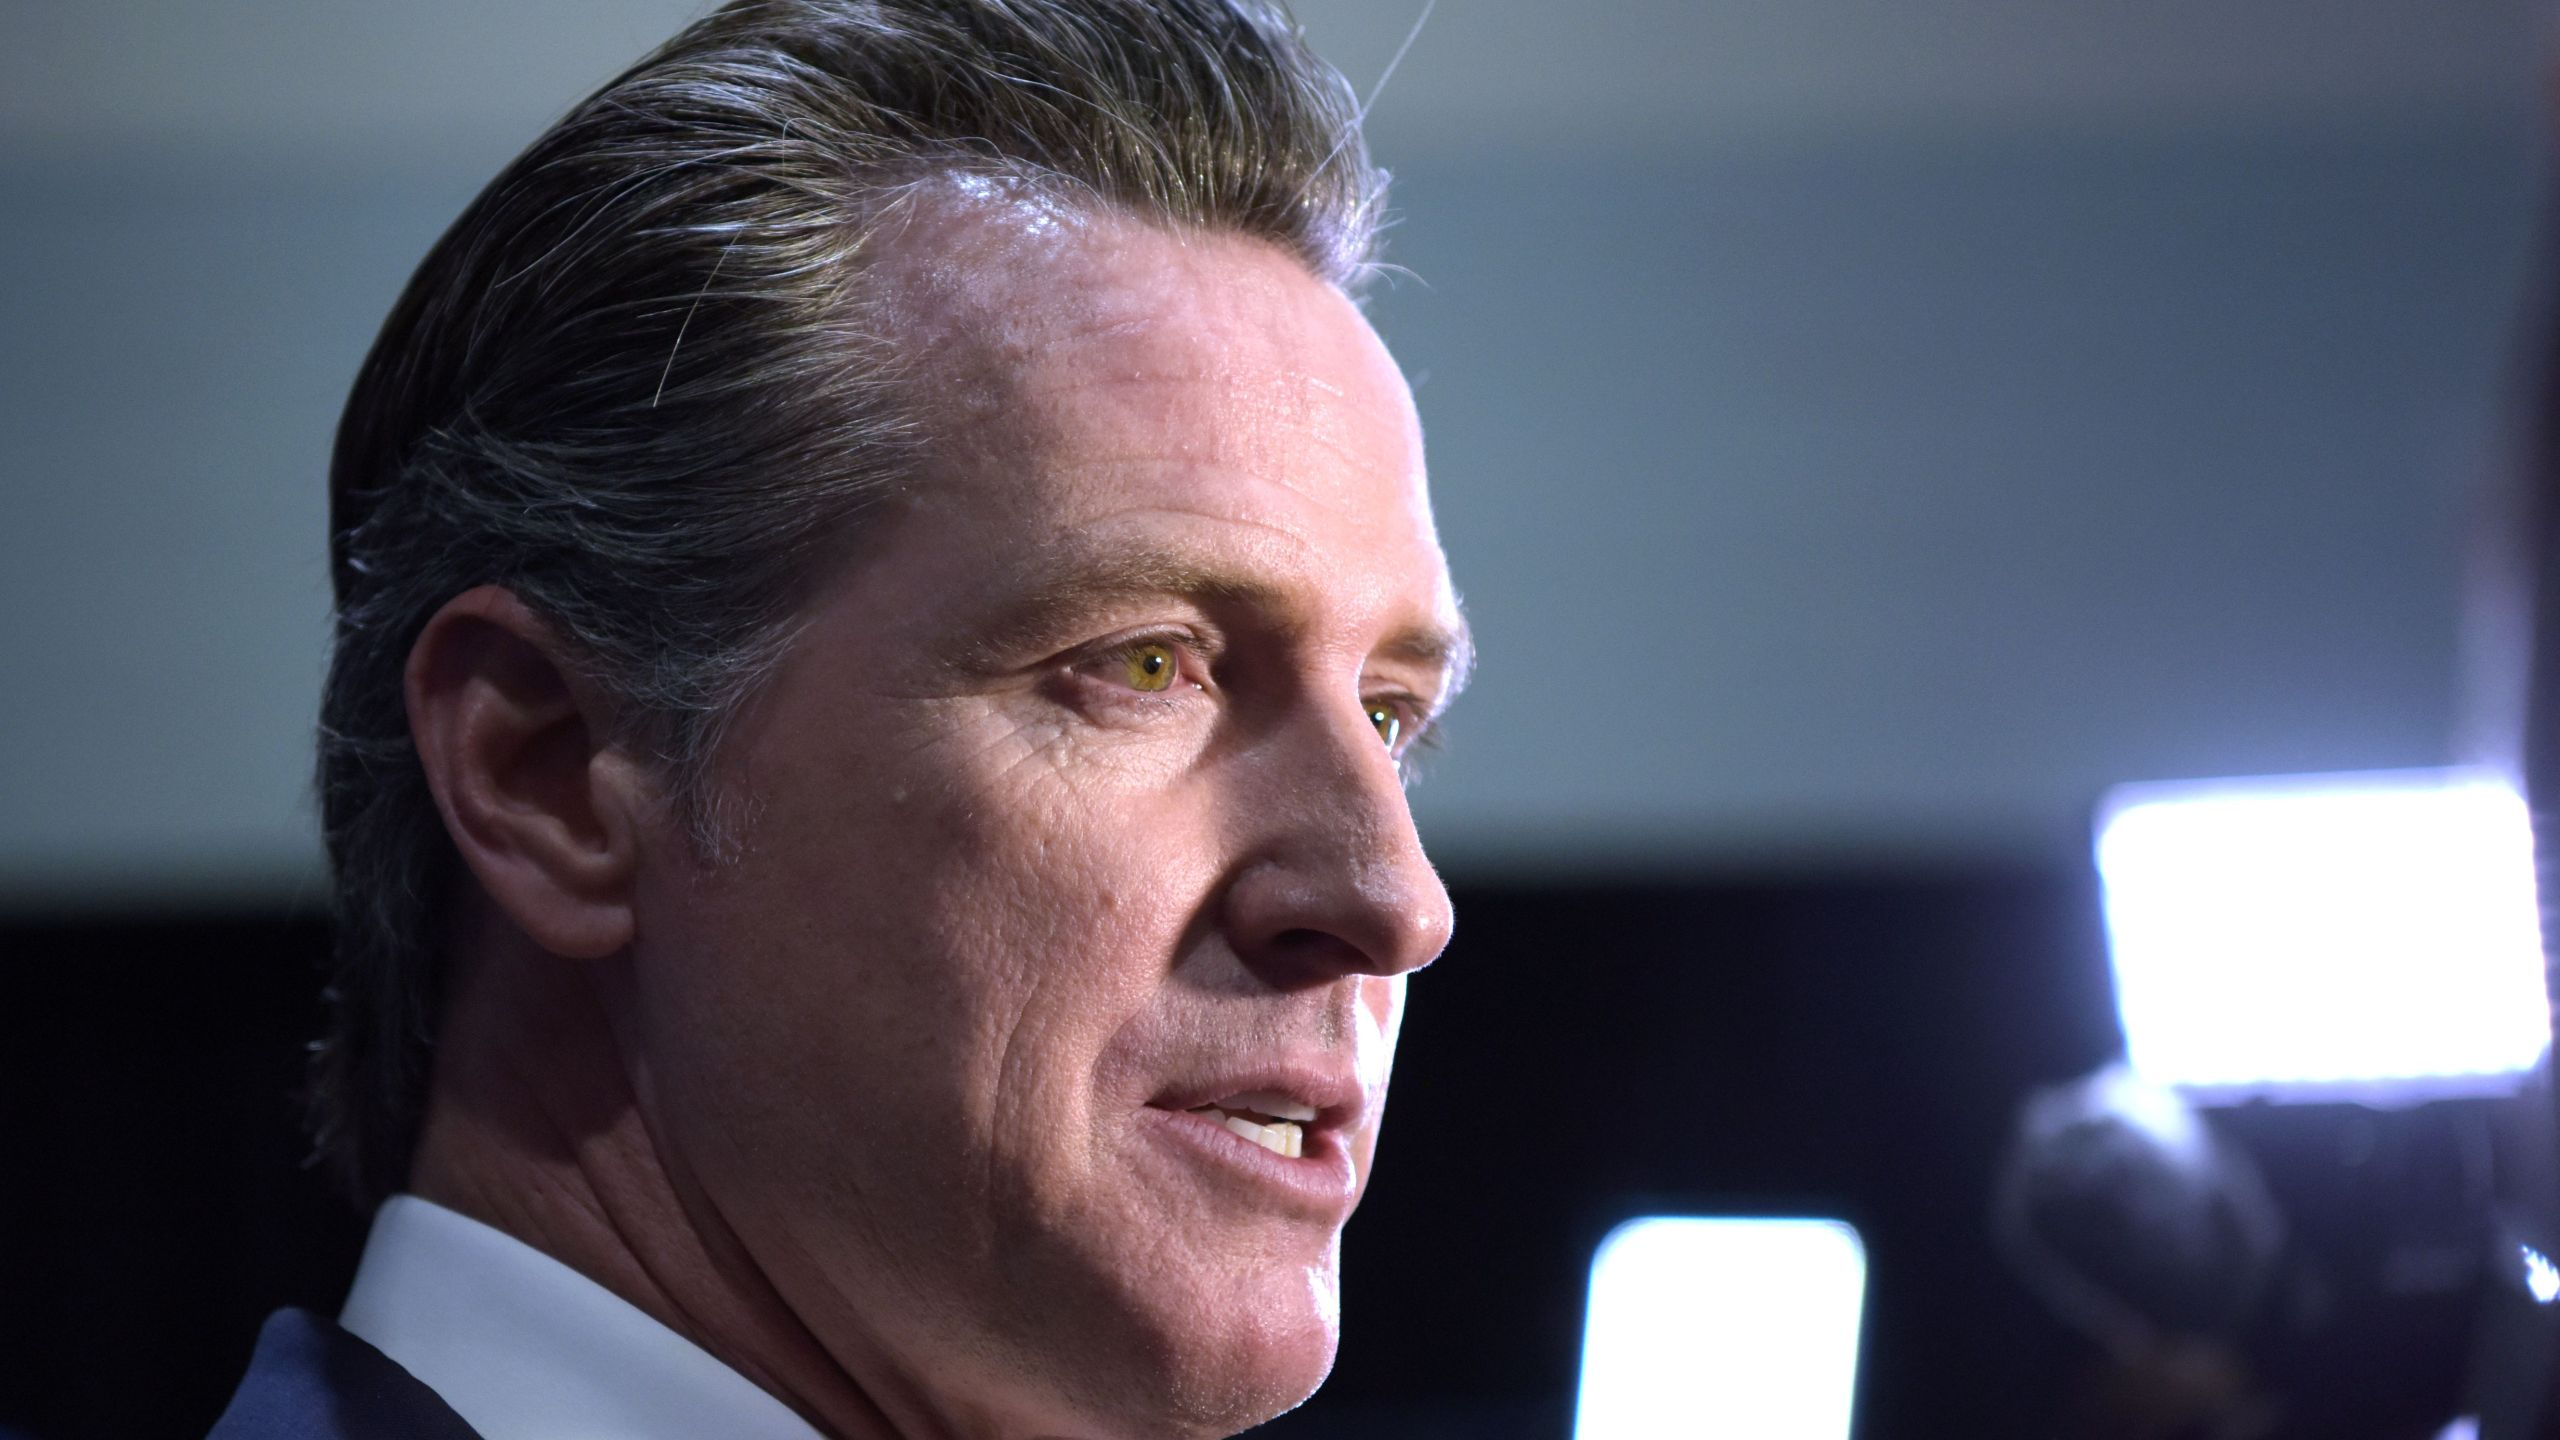 California Governor Gavin Newsom speaks to the press in the spin room after the sixth Democratic primary debate of the 2020 presidential campaign season co-hosted by PBS NewsHour & Politico at Loyola Marymount University in Los Angeles on December 19, 2019. (AGUSTIN PAULLIER/AFP via Getty Images)